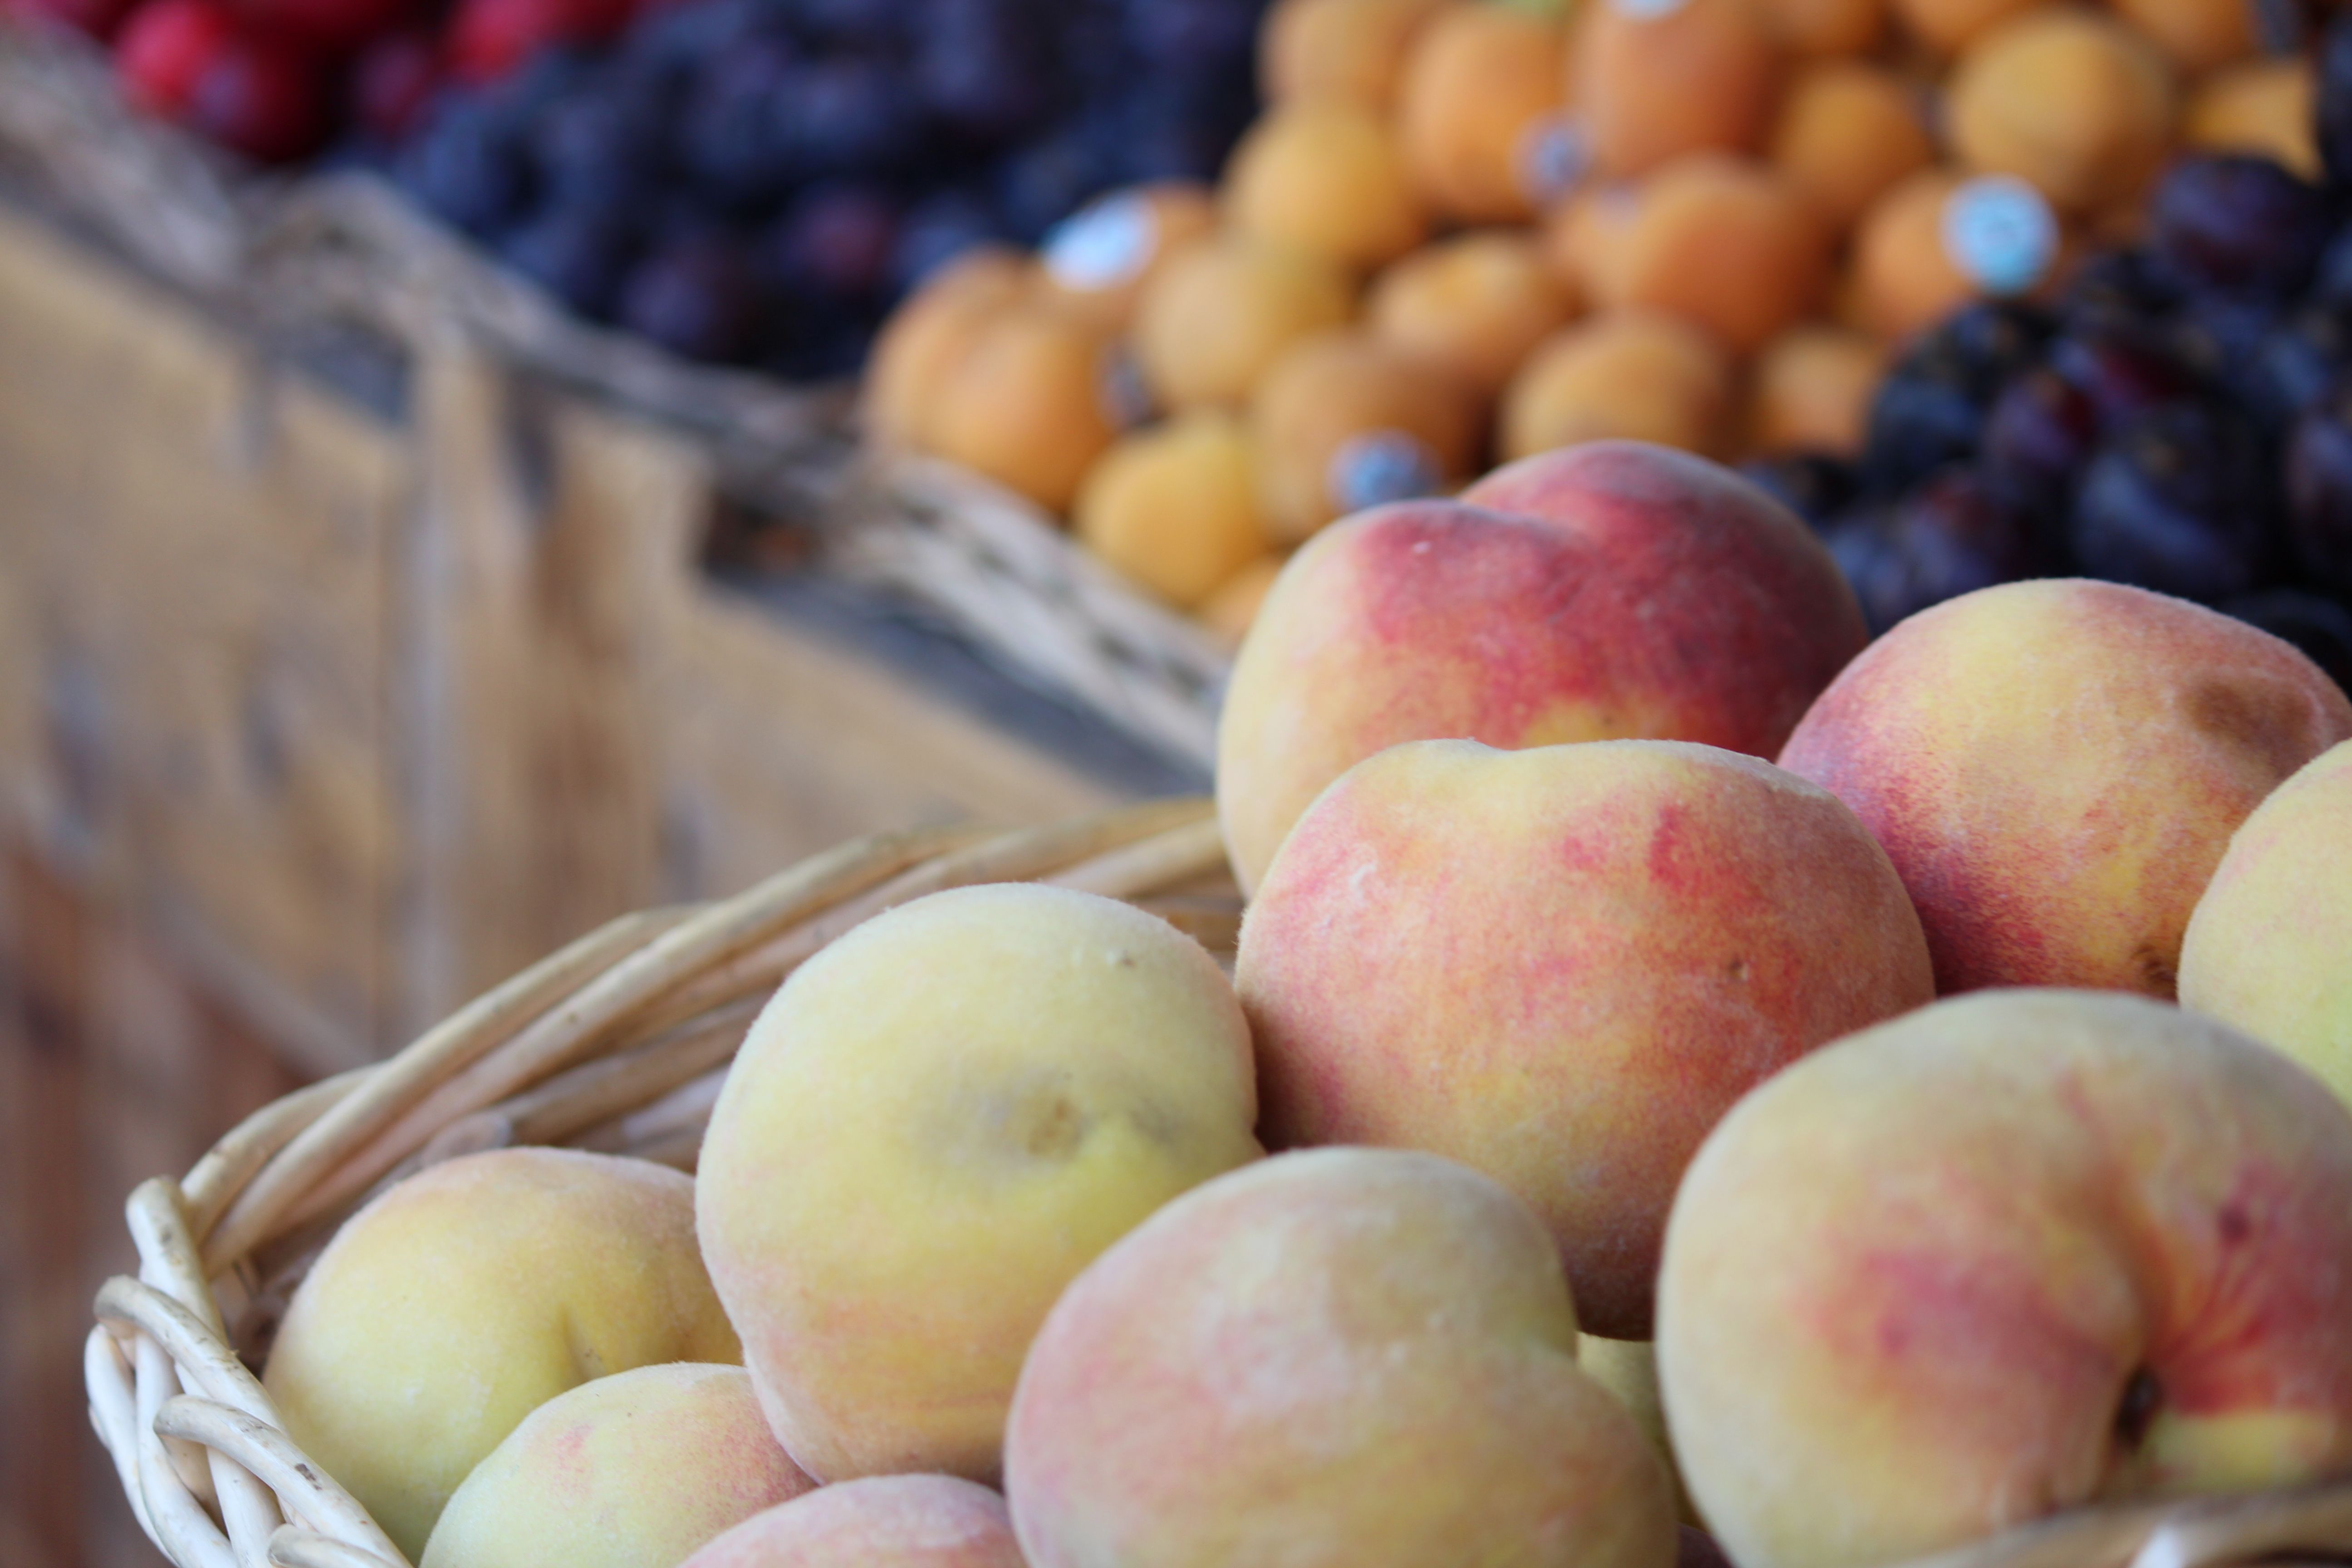 Vancouver Island fresh produce - Photo courtesy of Island Farm and Garden Magazine